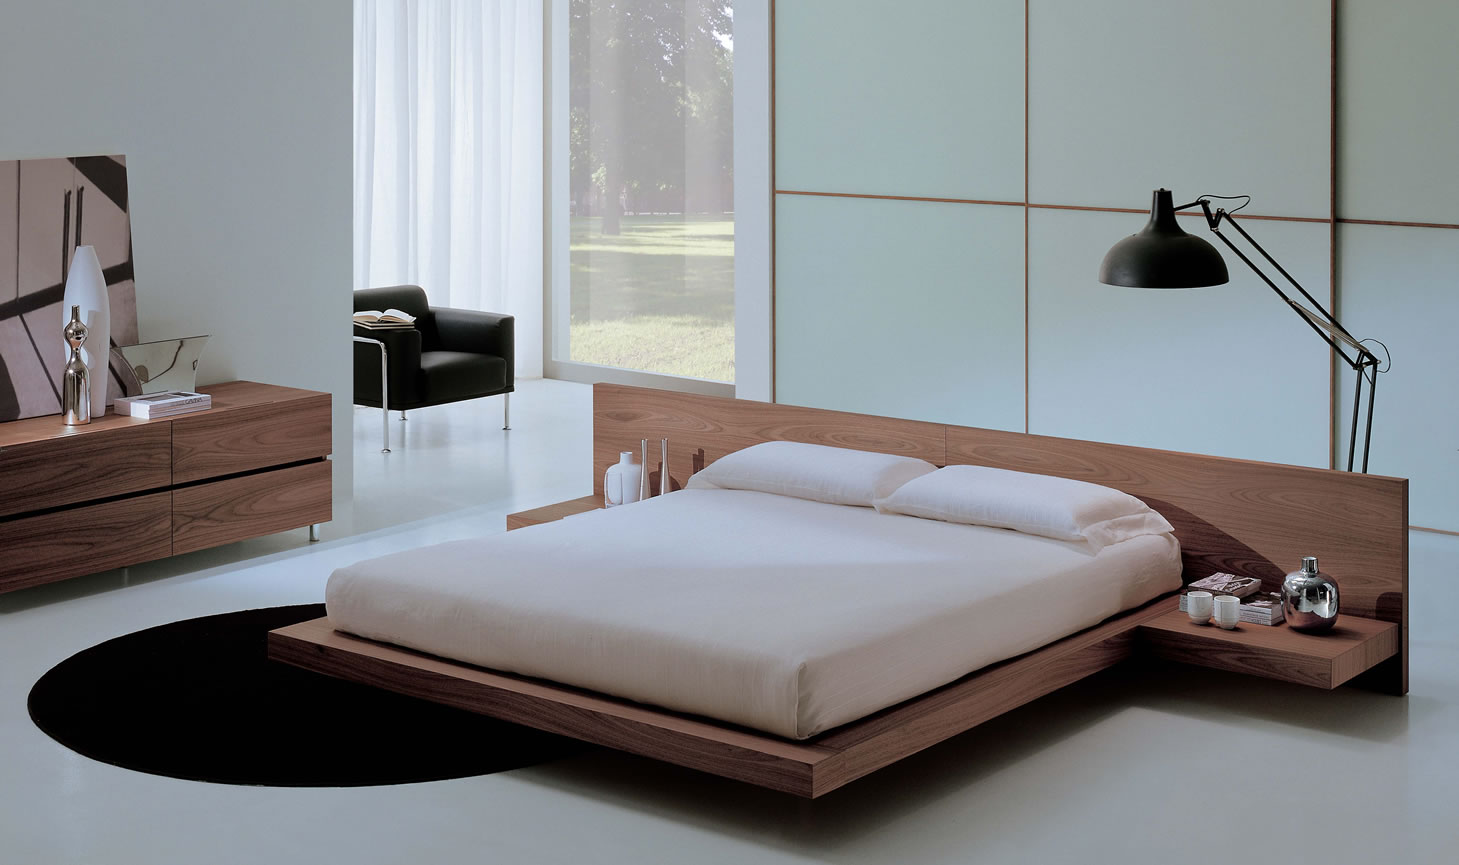 Use Minimalist Wooden Floating Bed as Modern Bedroom Furniture in Simple Room with Wooden Dresser